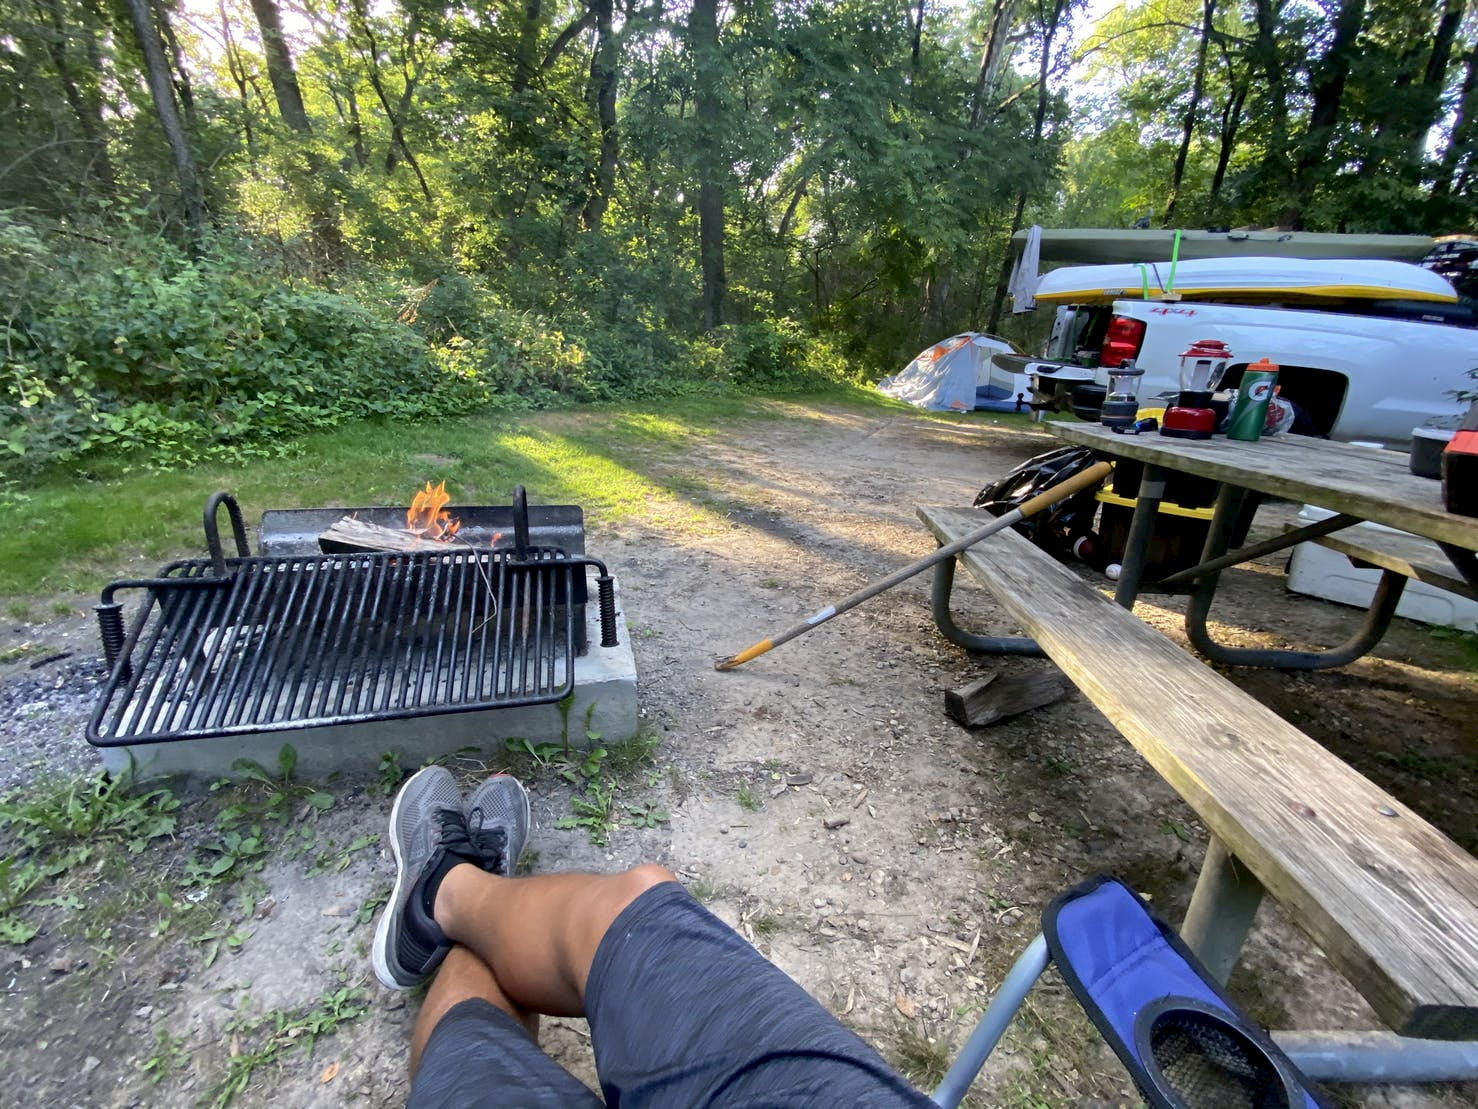 Person sitting in front of fire pit at campsite beside picnic table.